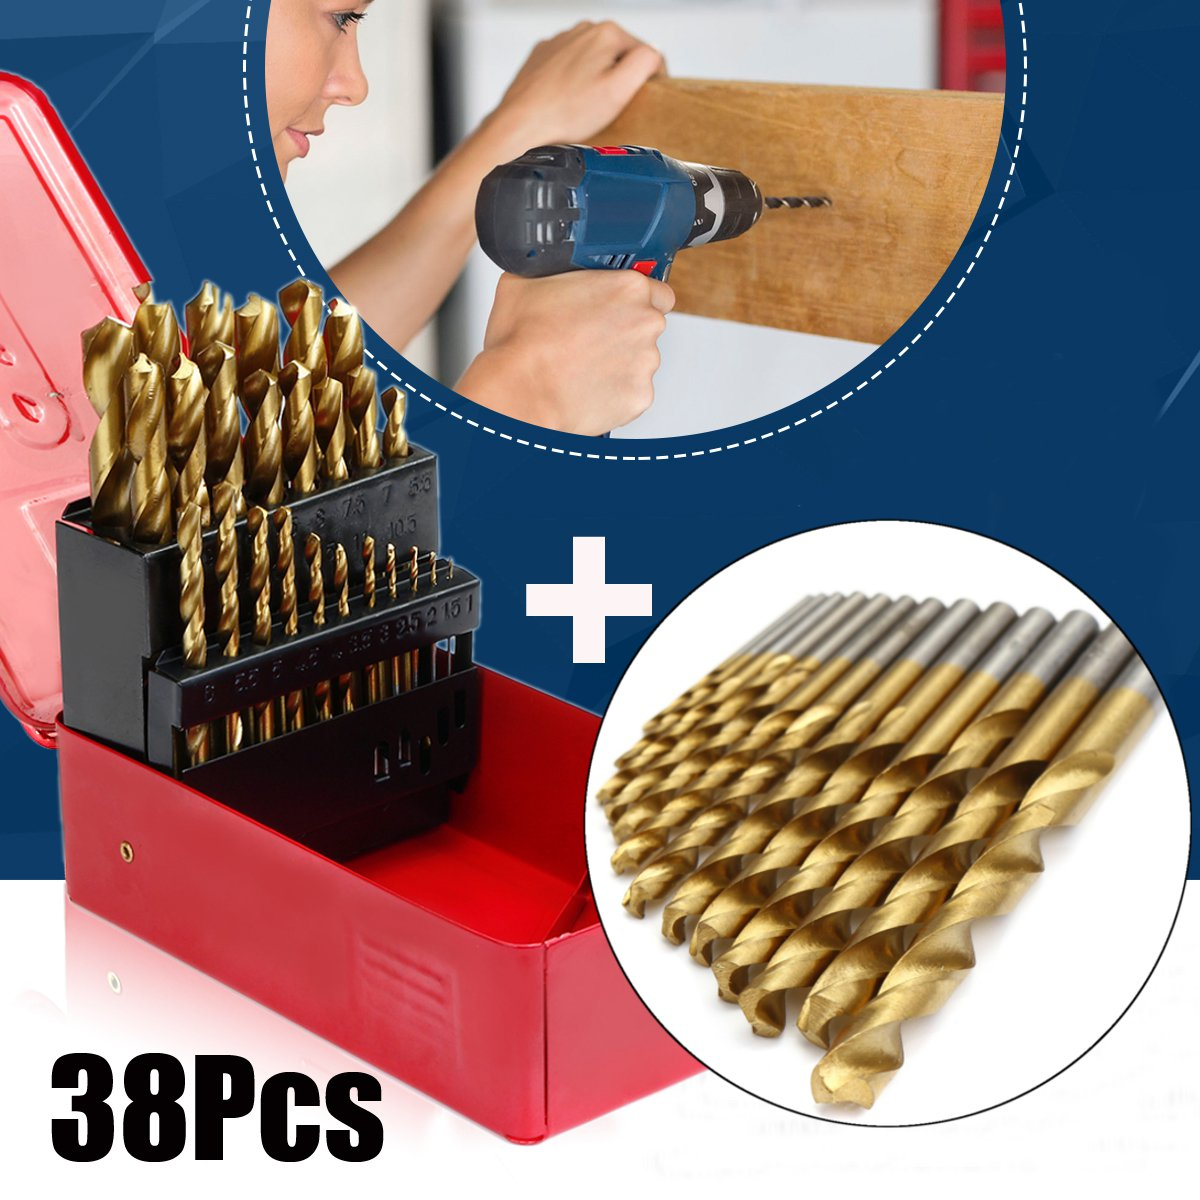 цена на 38Pcs Titanium Coated Drill Bits HSS High Speed Steel Drill Bits Set Tool High Quality Power Tools 1-13mm